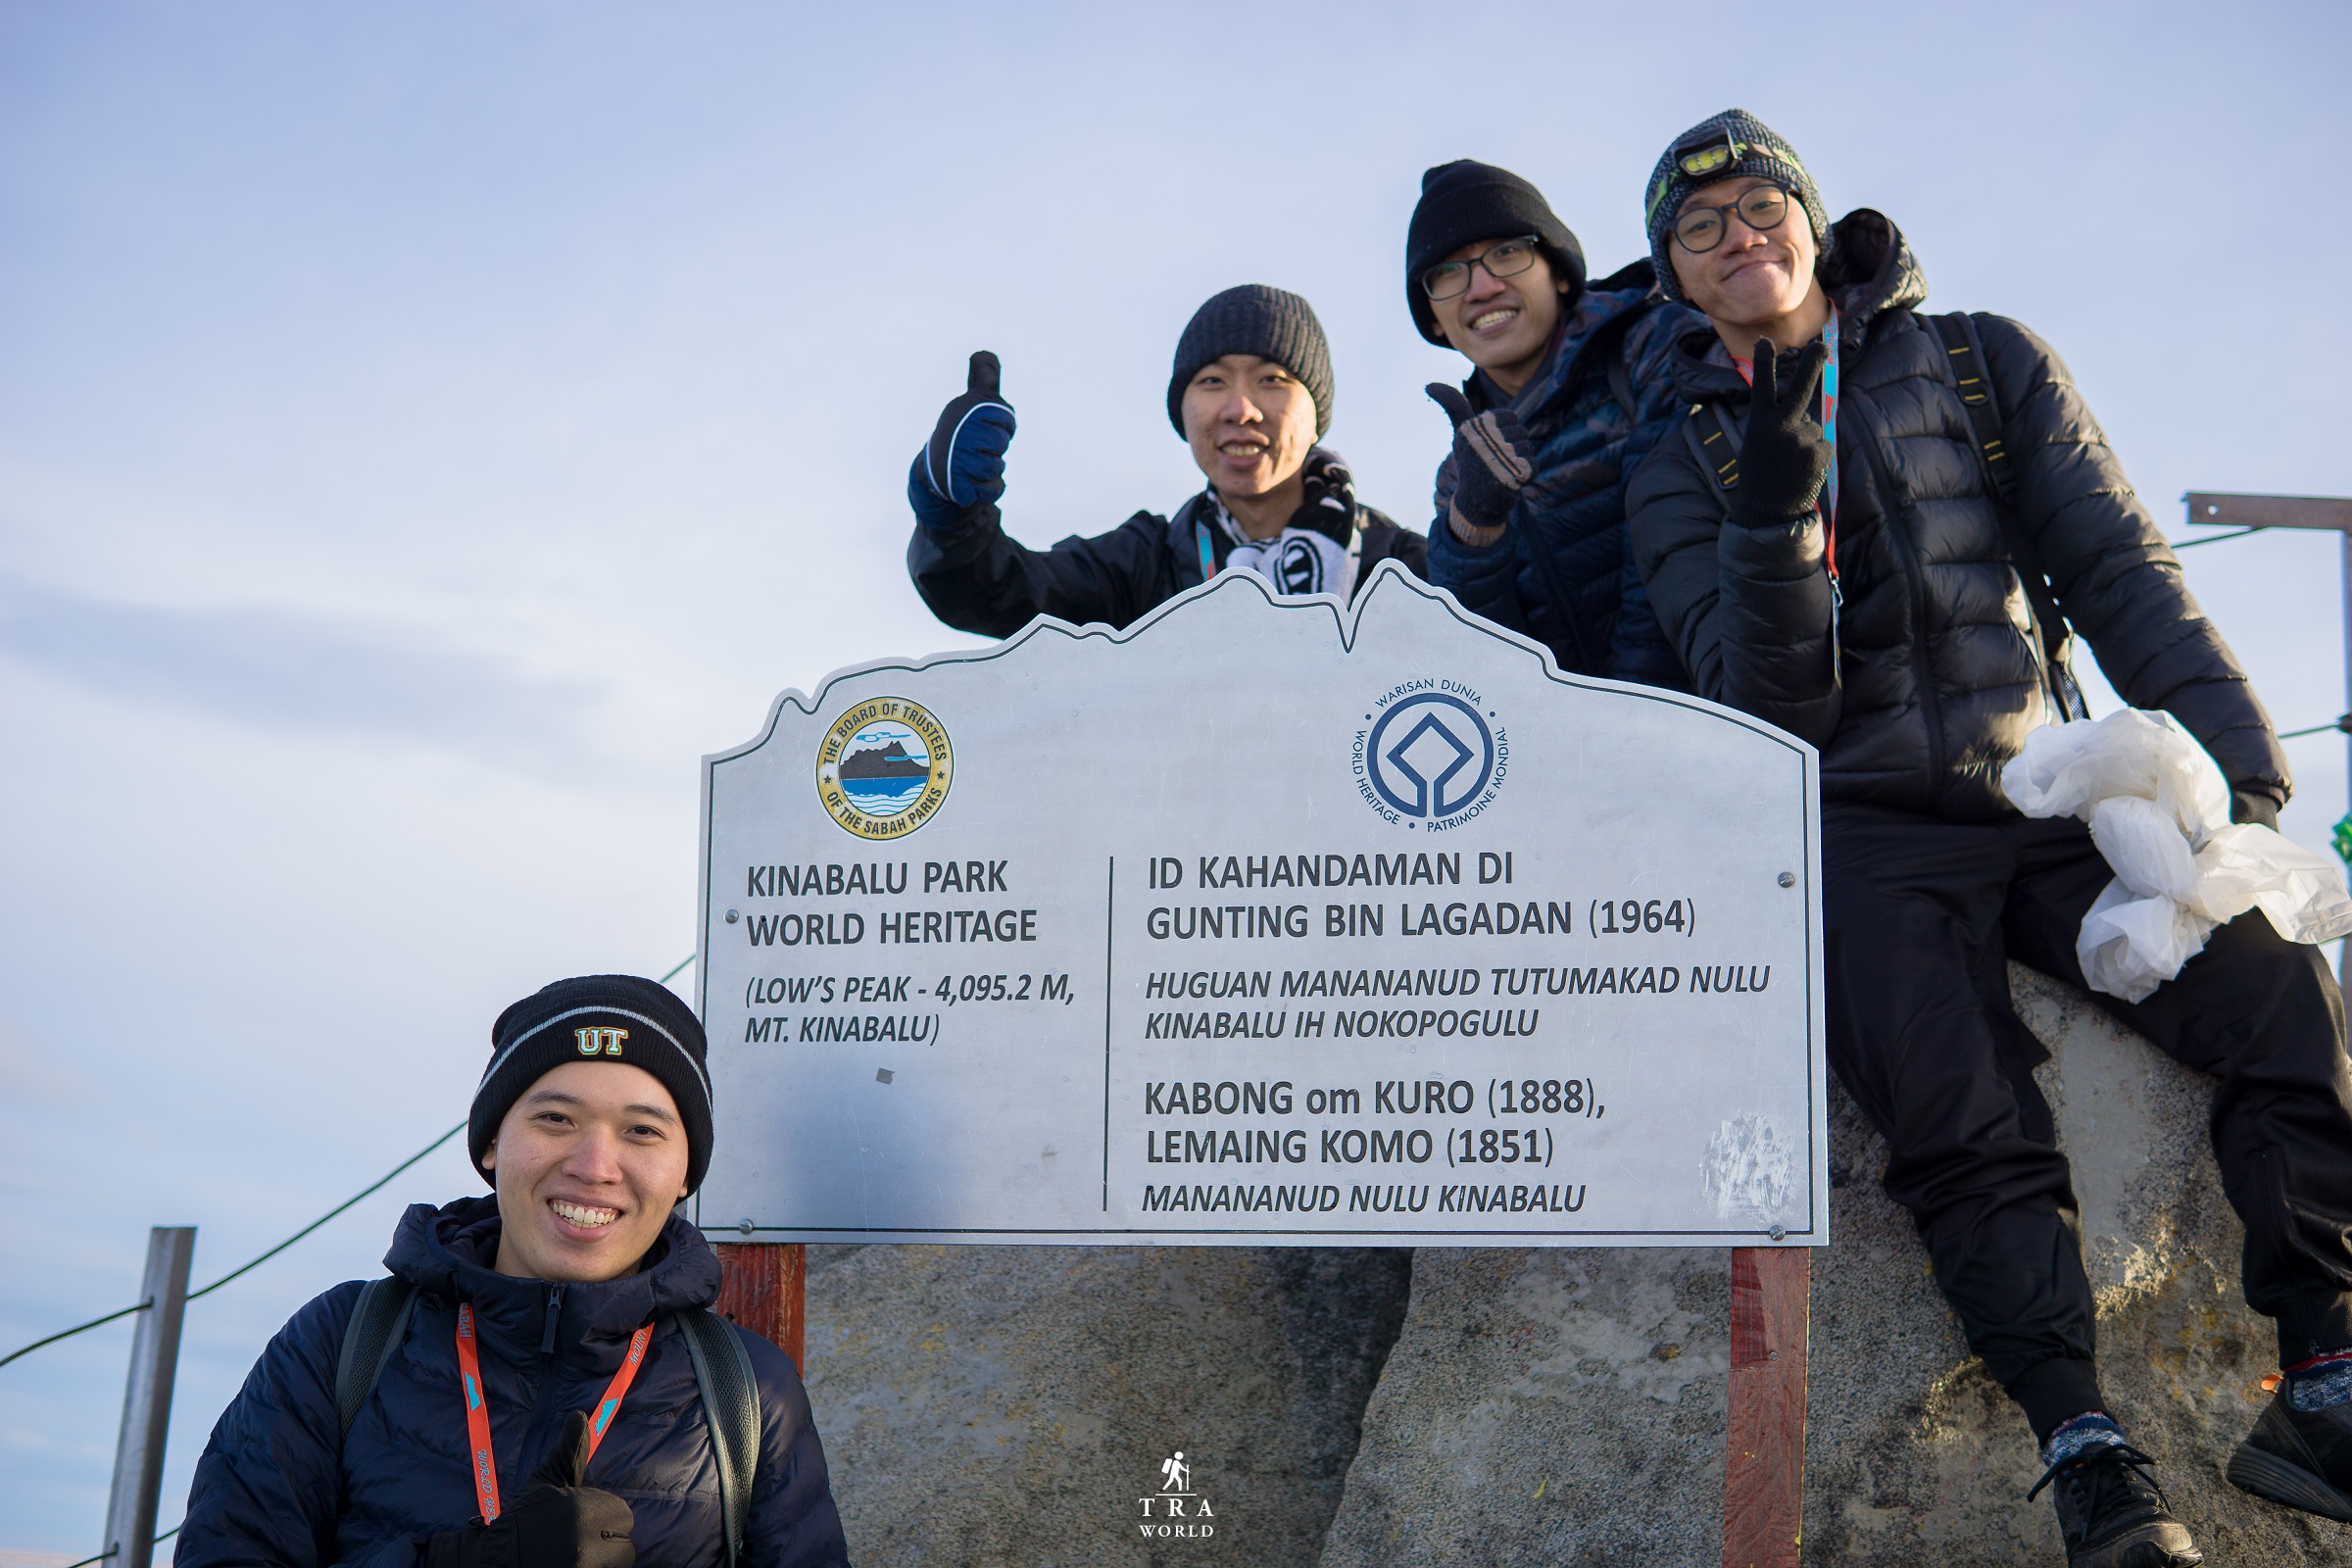 Team of accomplishing Mount Kinabalu. Mount Kinabalu peak signboard.